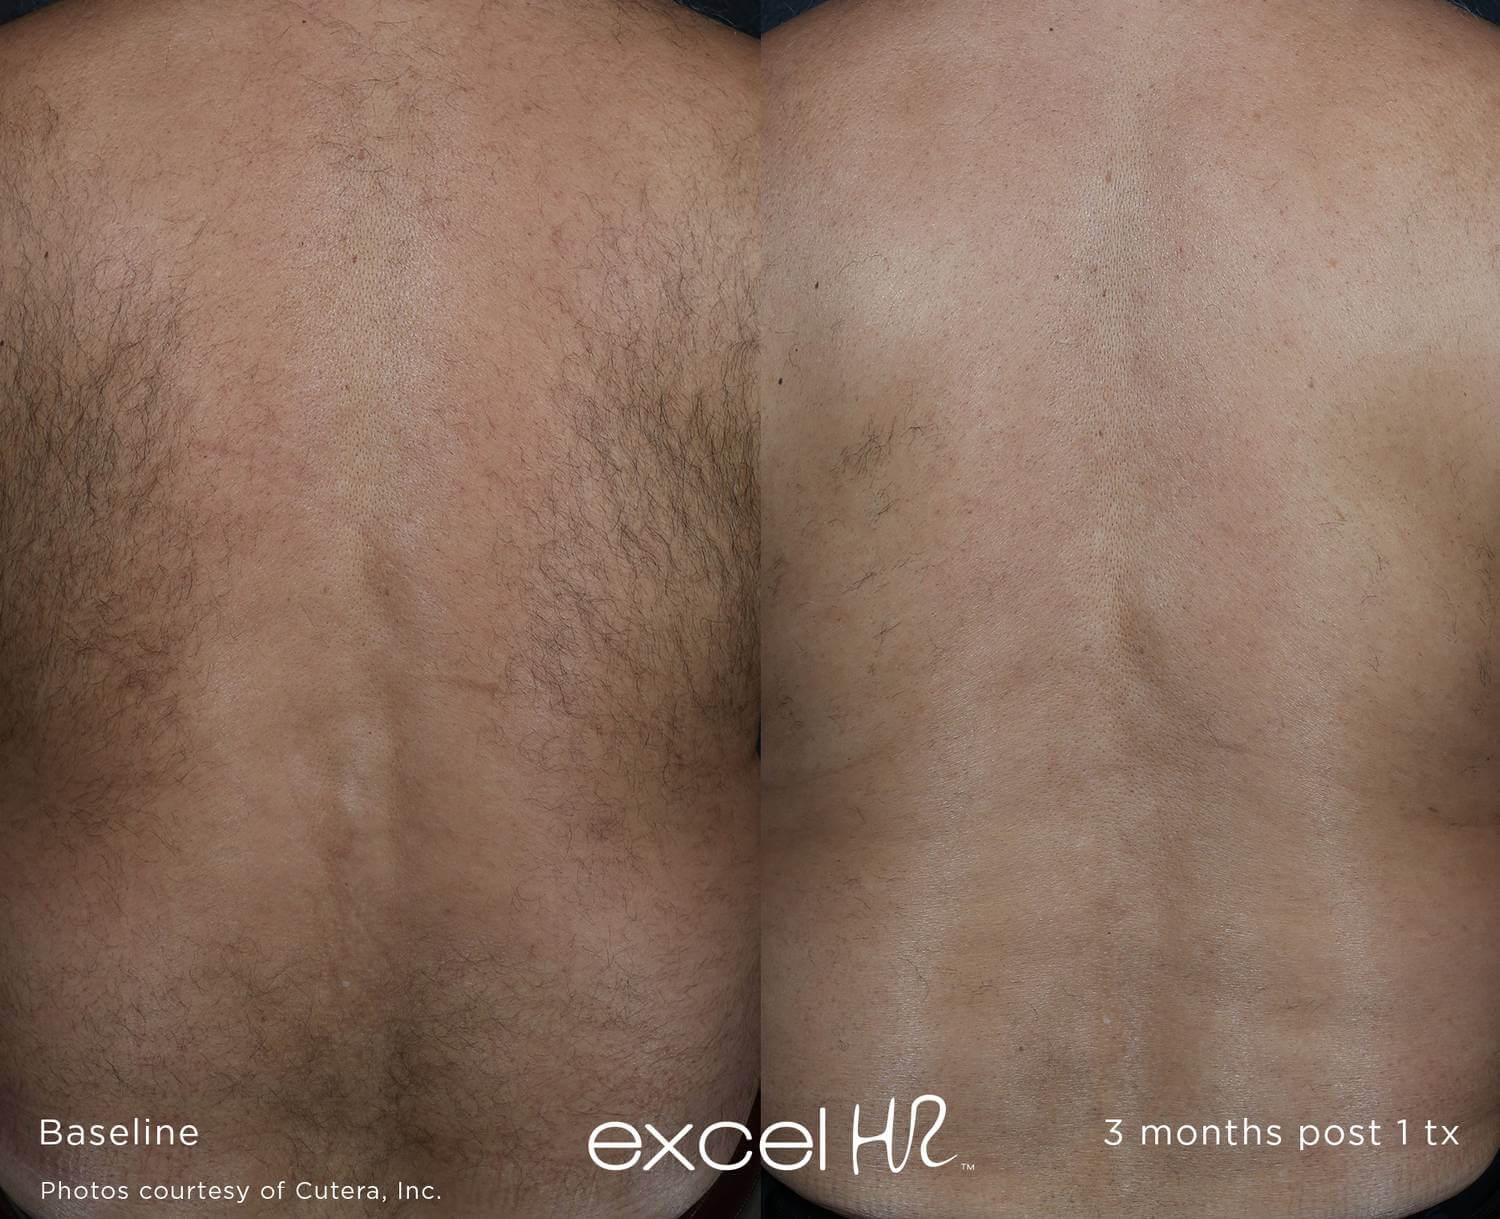 Before and after image of back laser hair removal hair growth 3 months after 1 treatment sessions with Excel HR laser - Miami Skin Spa